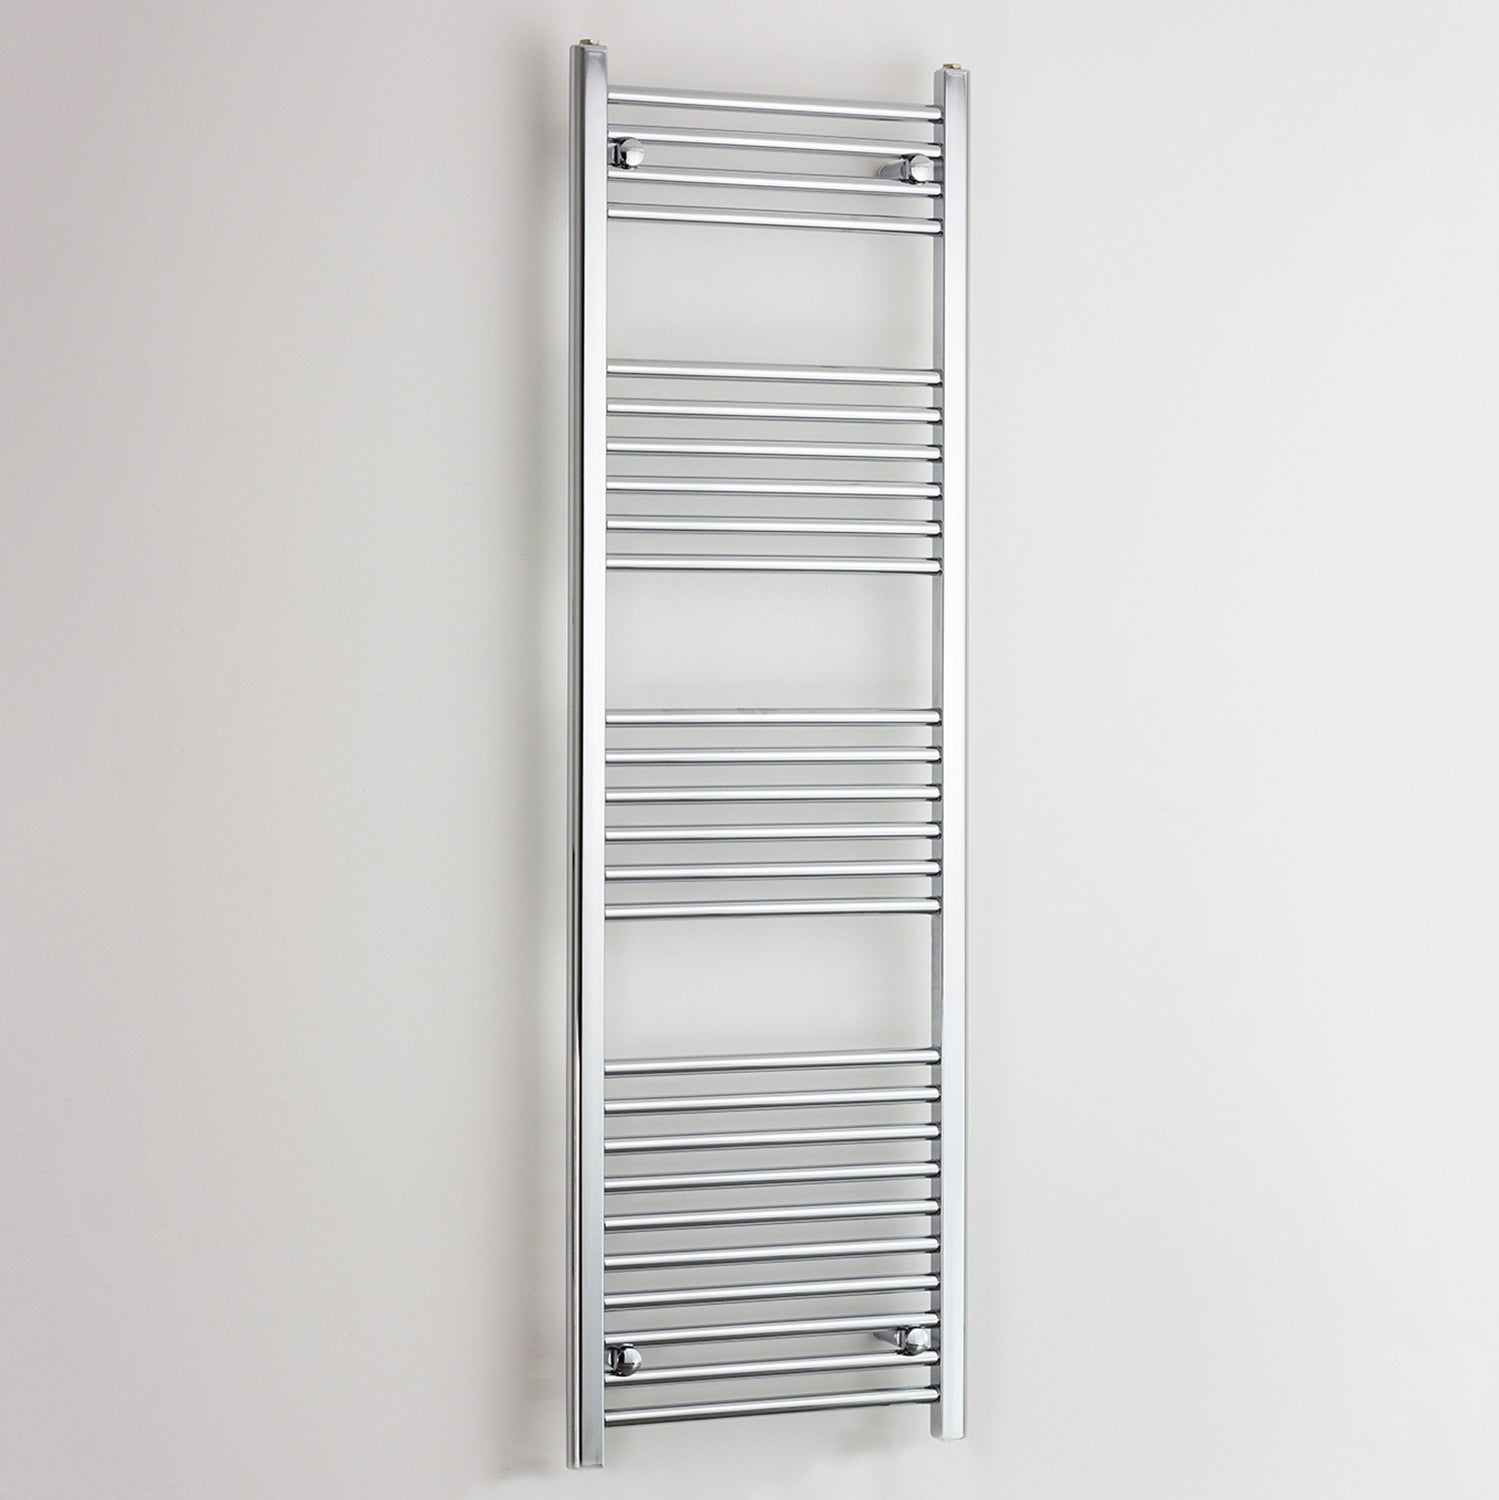 400 mm Wide 1600 mm High Heated Straight Towel Rail Radiator Chrome,Towel Rail Only